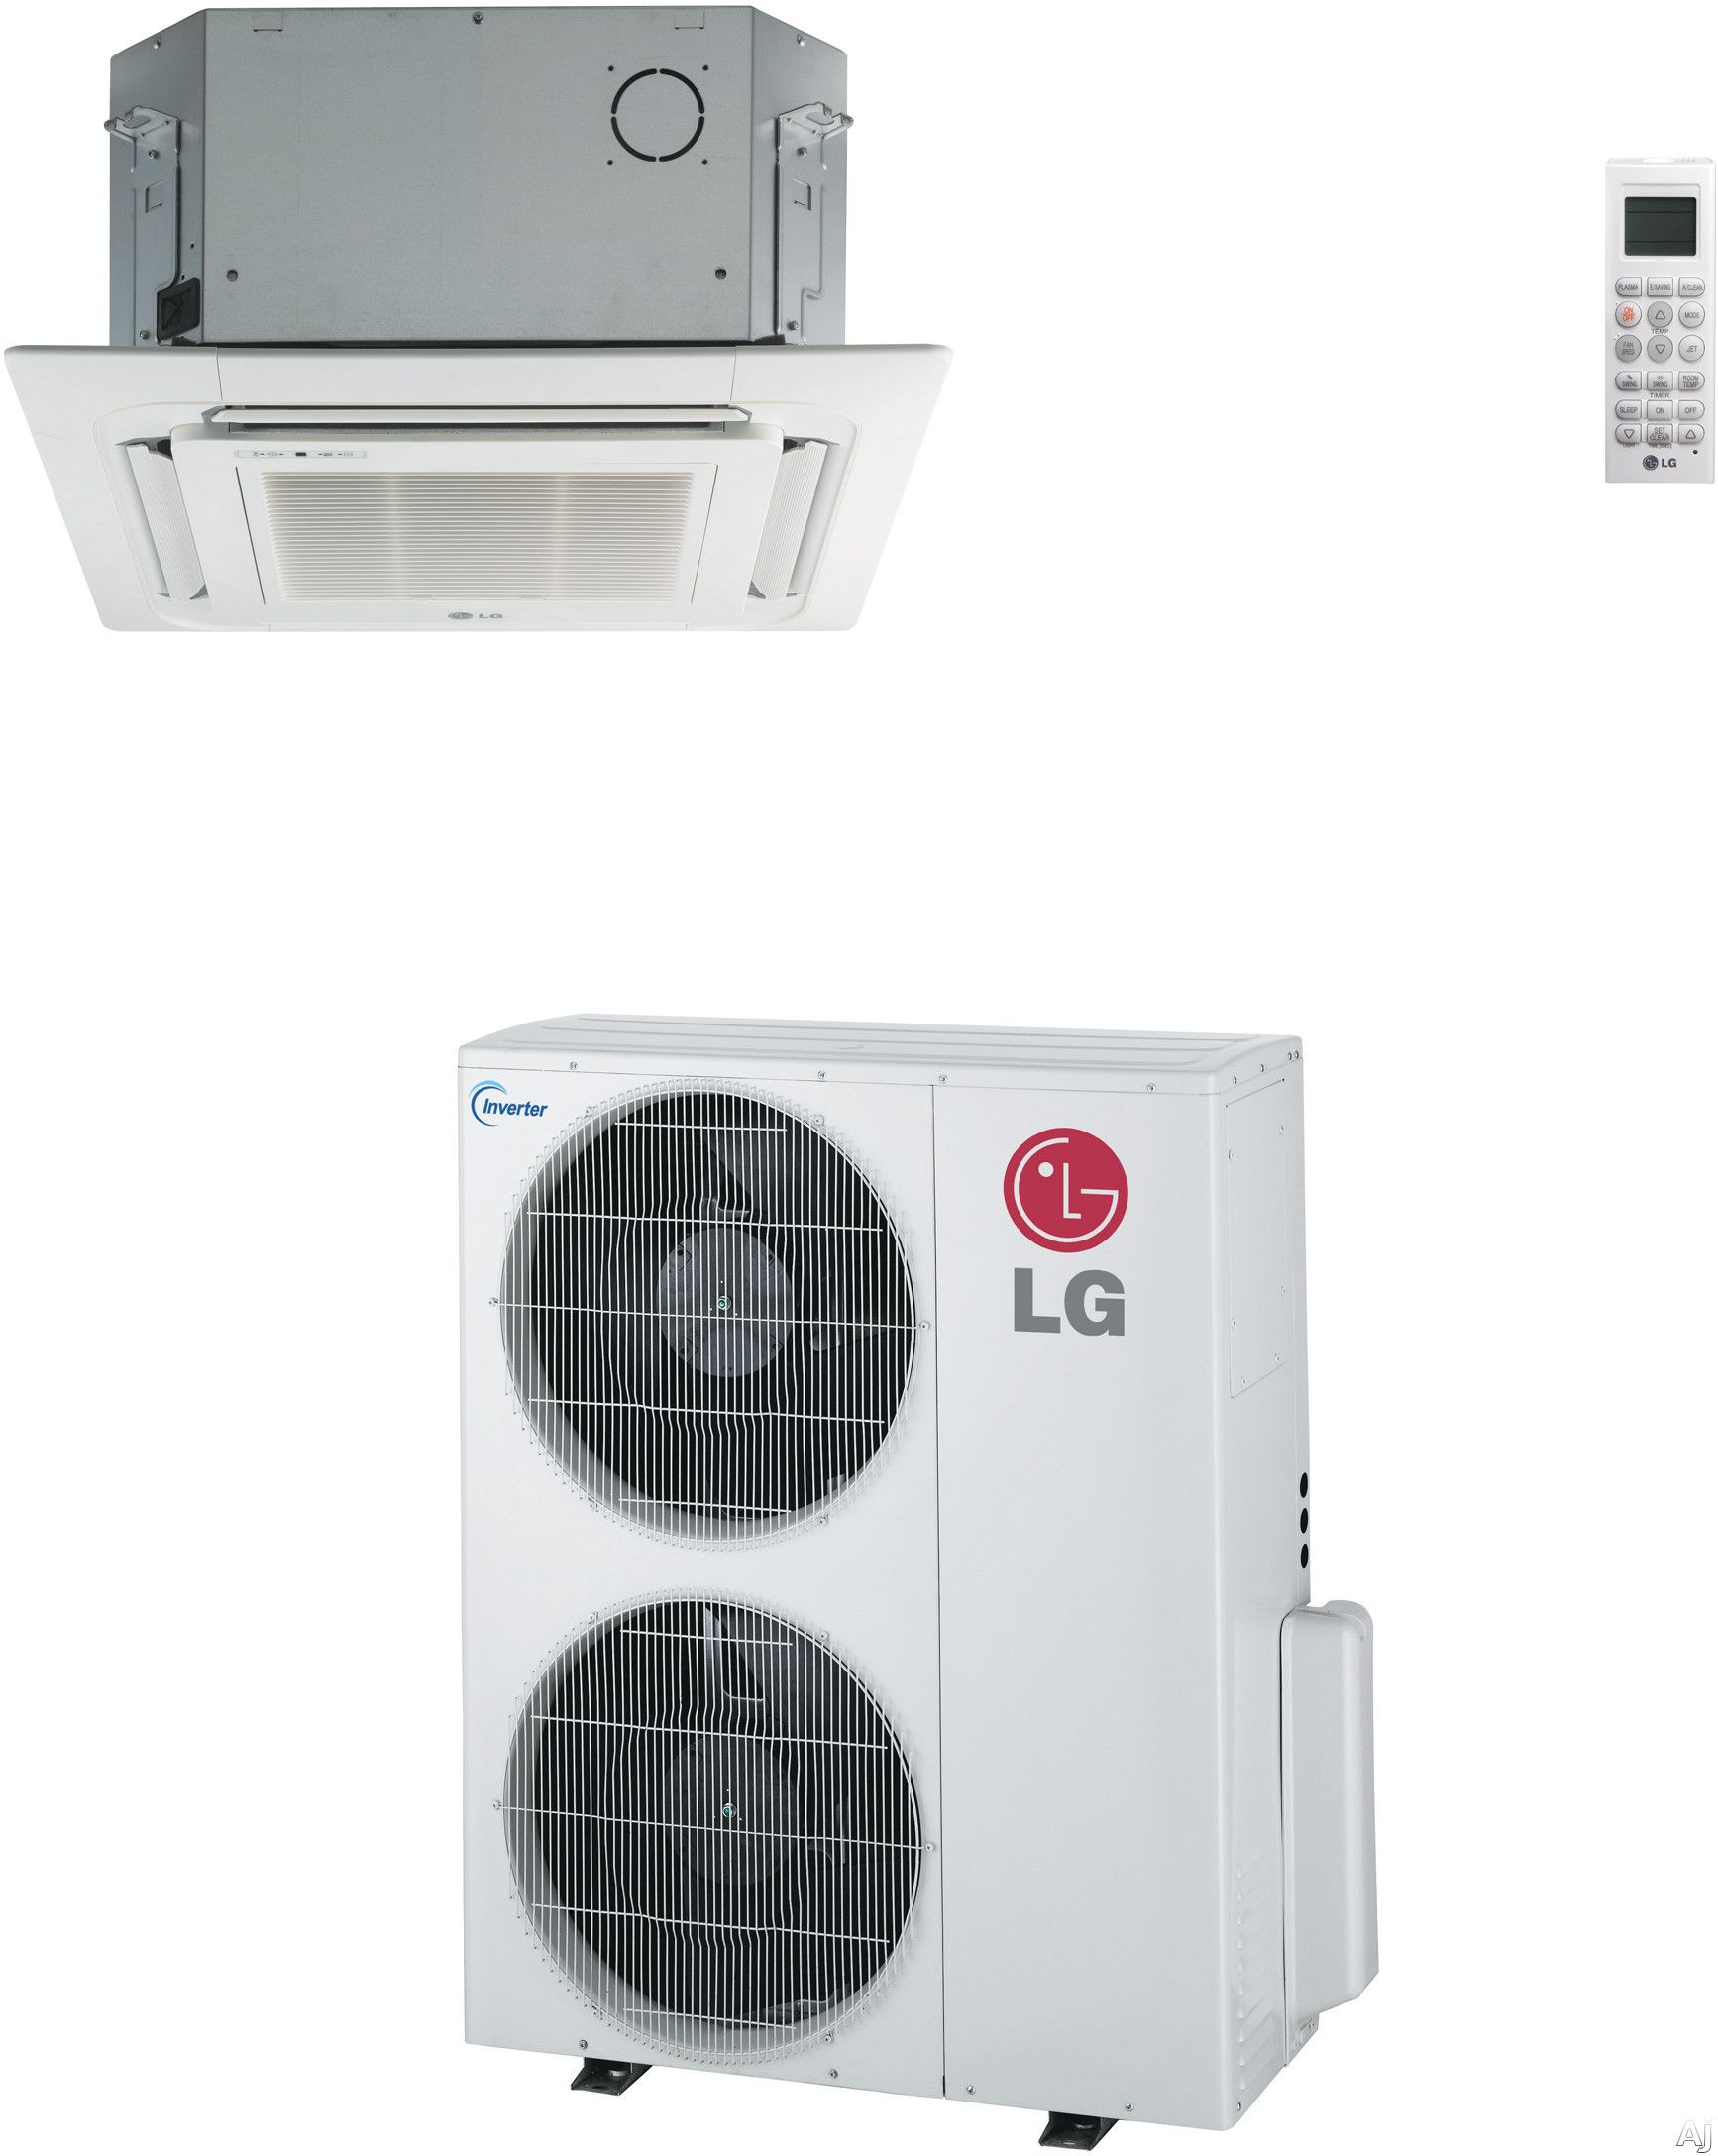 LG LC427HV 41,000 BTU Single Zone Ceiling Cassette Cool